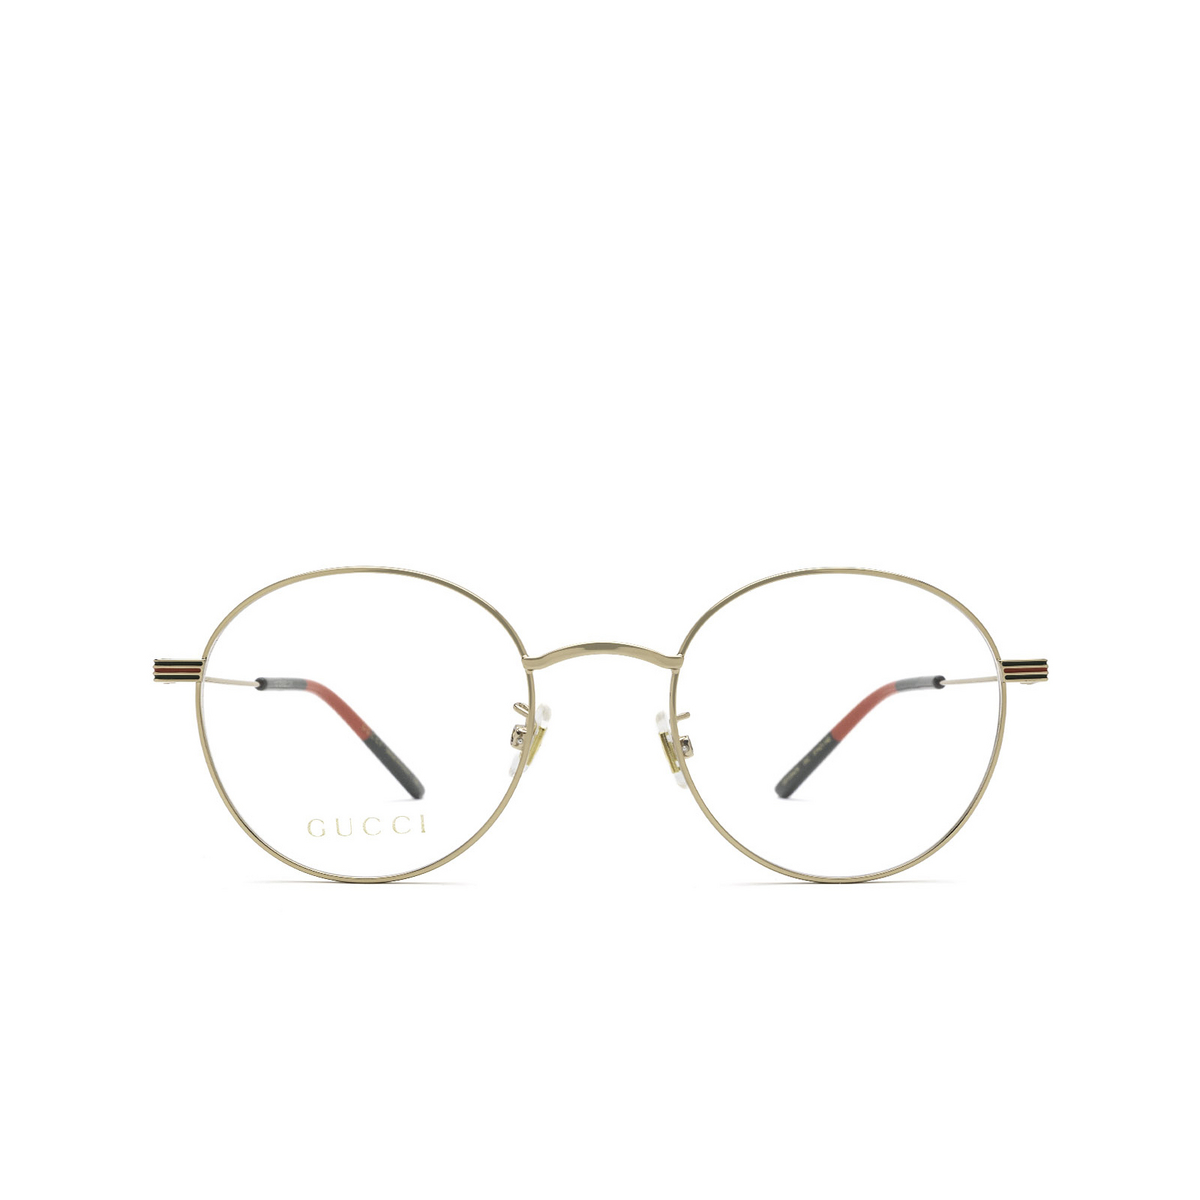 Gucci® Round Eyeglasses: GG1054OK color Gold 002 - front view.